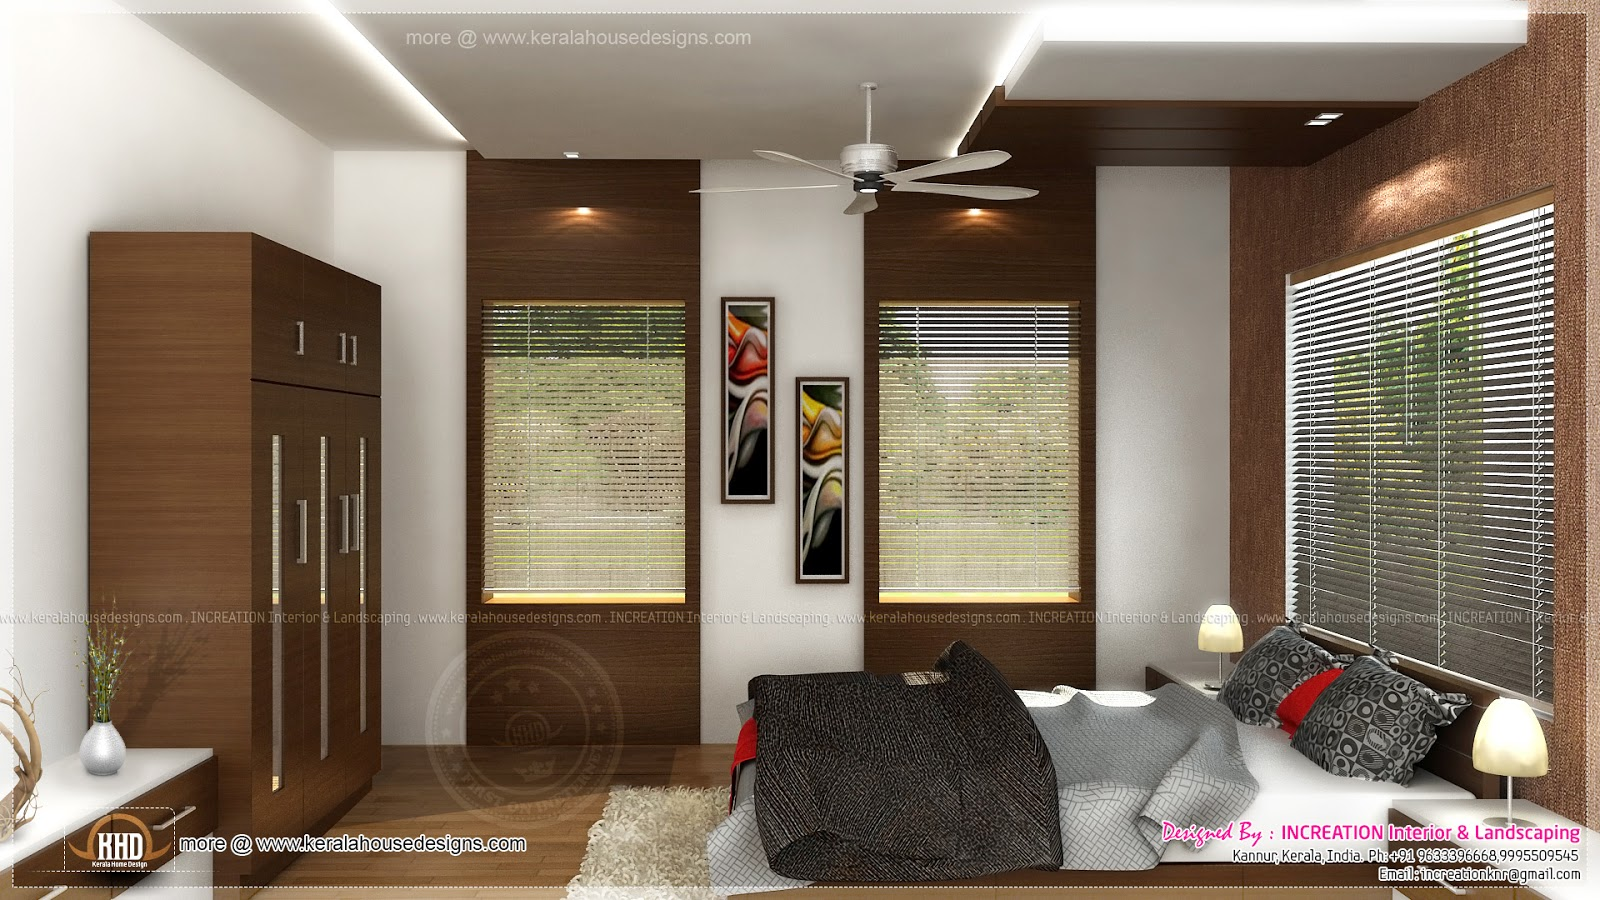 Bedroom design kerala style home decoration live for Kerala model interior designs